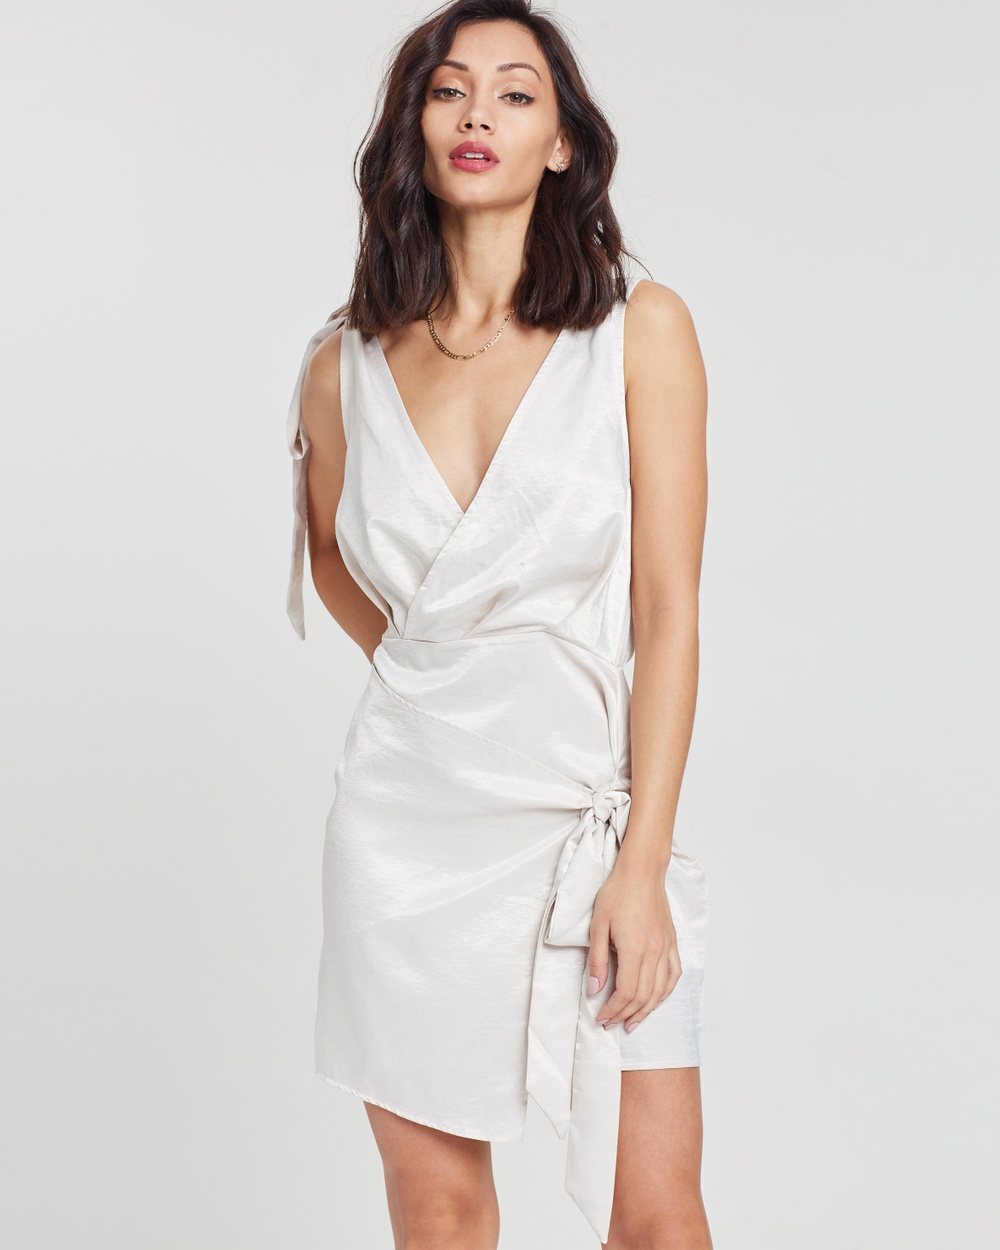 Missguided Silky Shift Dress Dresses Cream Silky Shift Dress